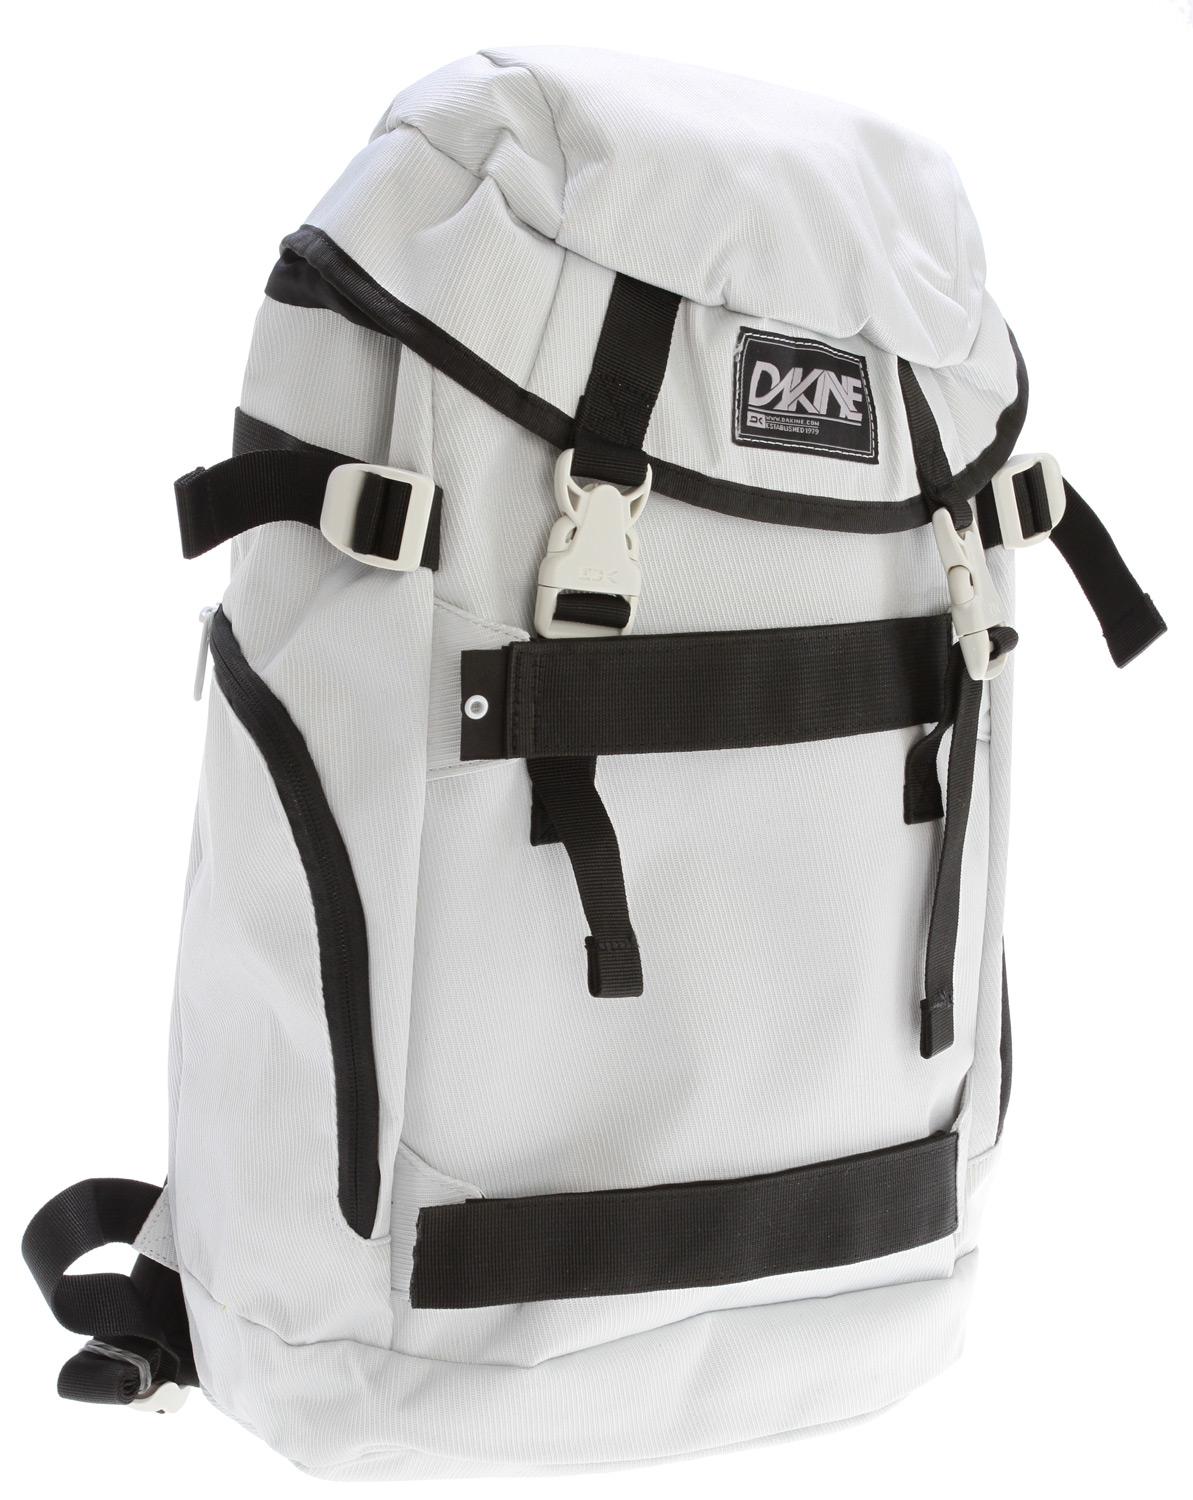 "Surf Key Features of the Dakine Burnside Backpack: Fleece lined, padded sleeve fits most 15"" laptops Side access to laptop sleeve Skate carry straps Zippered side pockets Padded bottom panel Volume: 1725 cu. in. [ 28 L ] Size: 19.5 x 11.5 x 9.5"" [ 49 x 29 x 24cm ] Materials: 600D Polyester - $32.95"